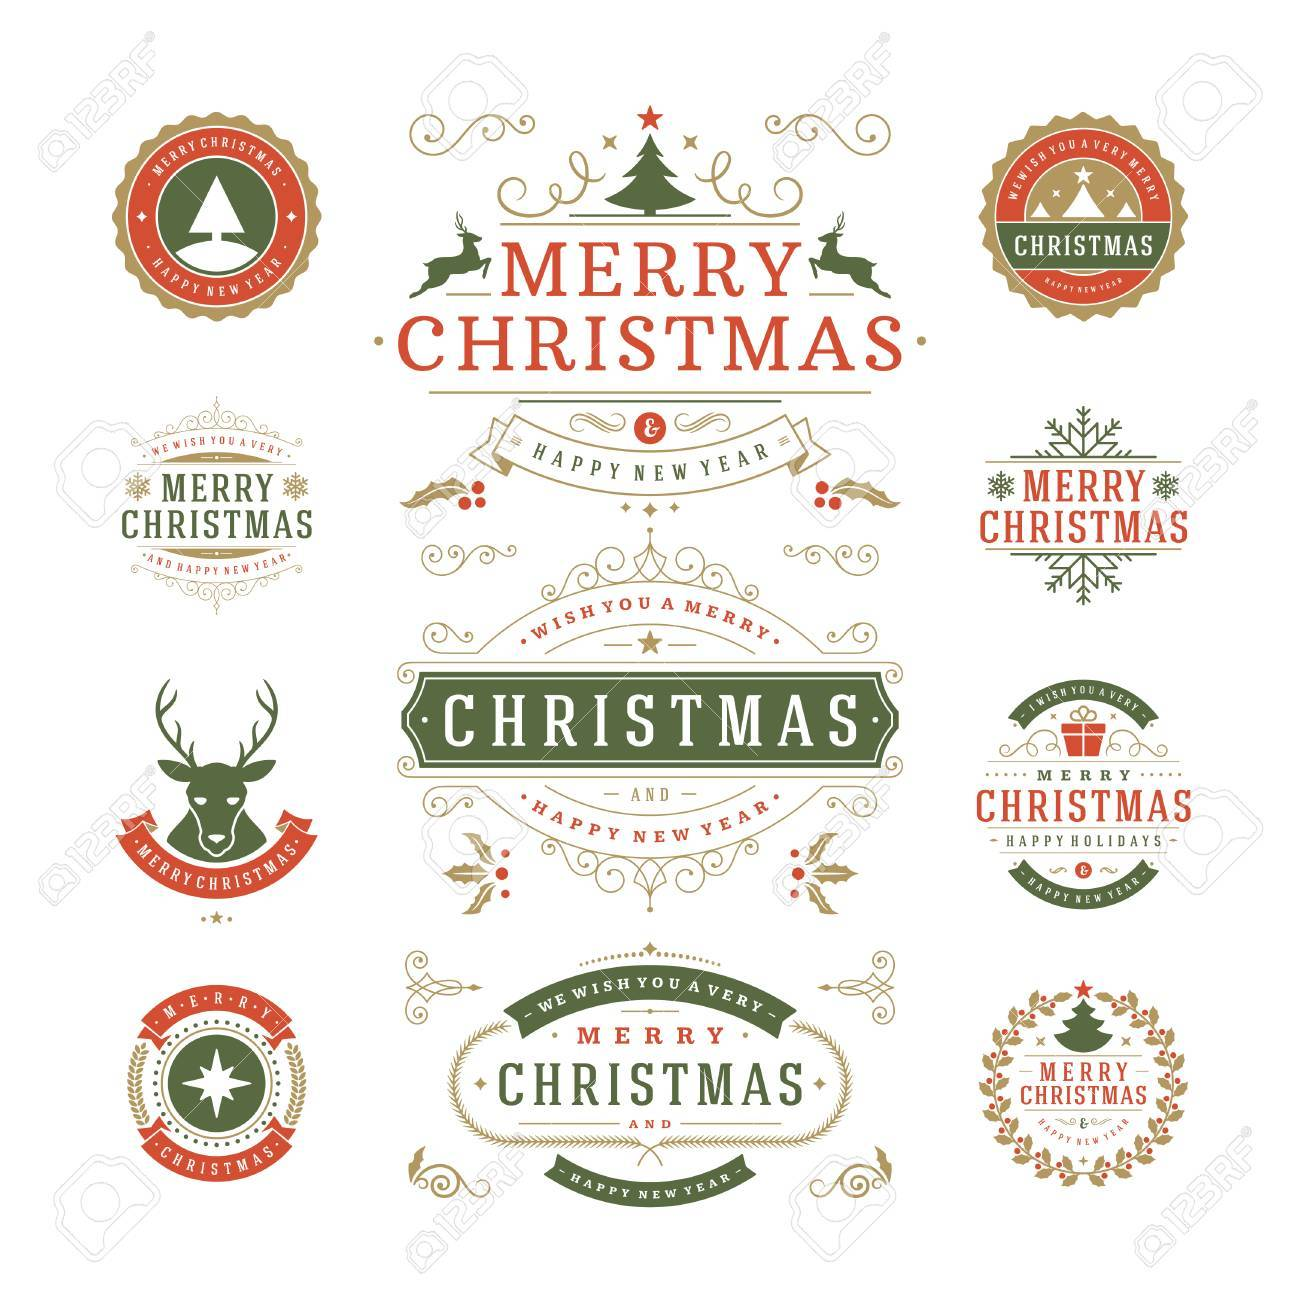 Christmas Labels and Badges Vector Design. Decorations elements, Symbols, Icons, Frames, Ornaments and Ribbons, set. Typographic Merry Christmas and Happy Holidays wishes. - 46169002